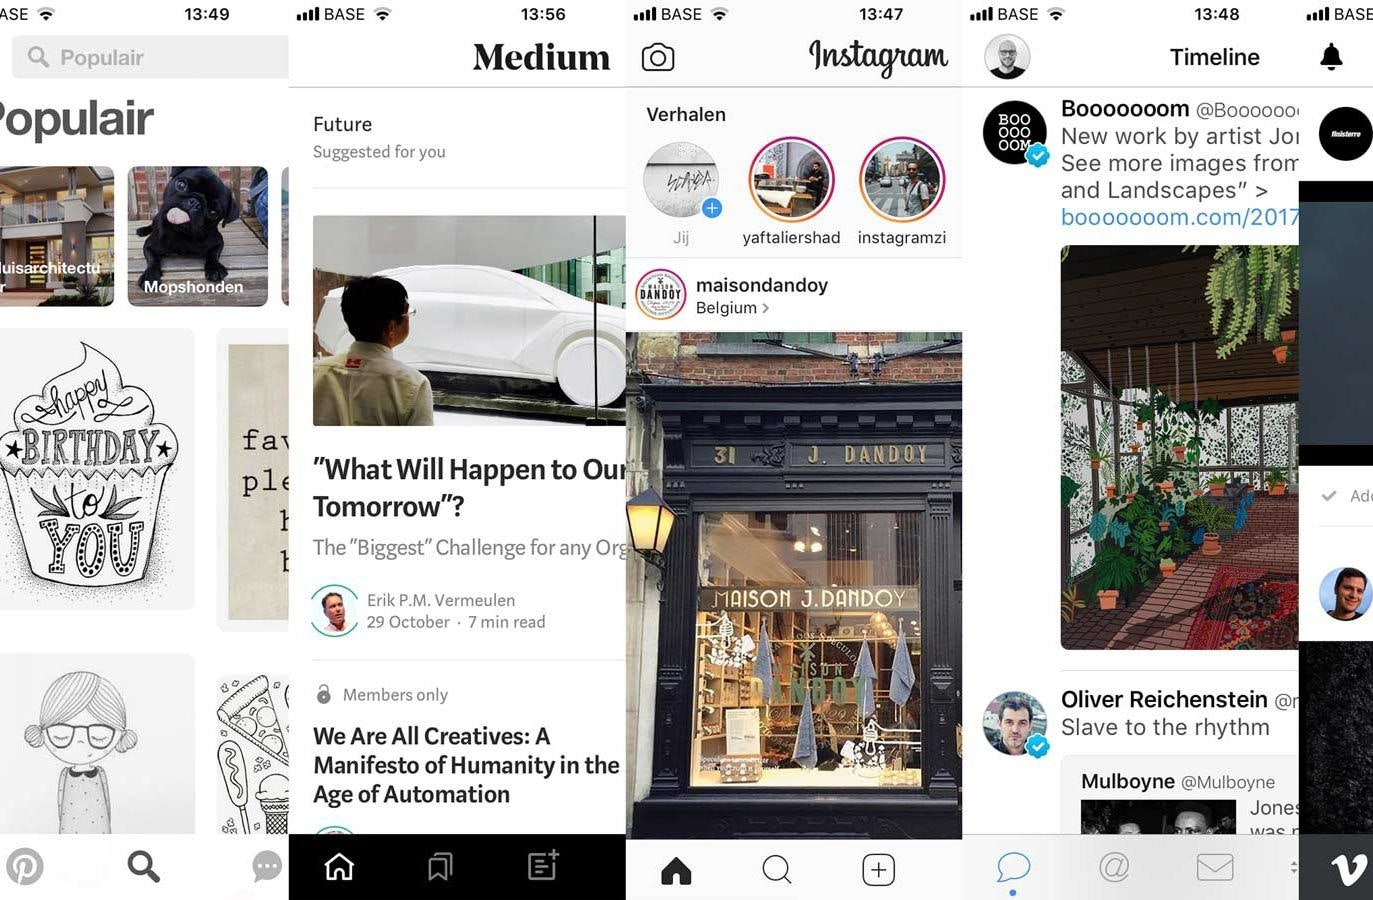 Pinterest, Medium, Instagram, Twitter, Vimeo screenshots illustrating sameness in interfaces